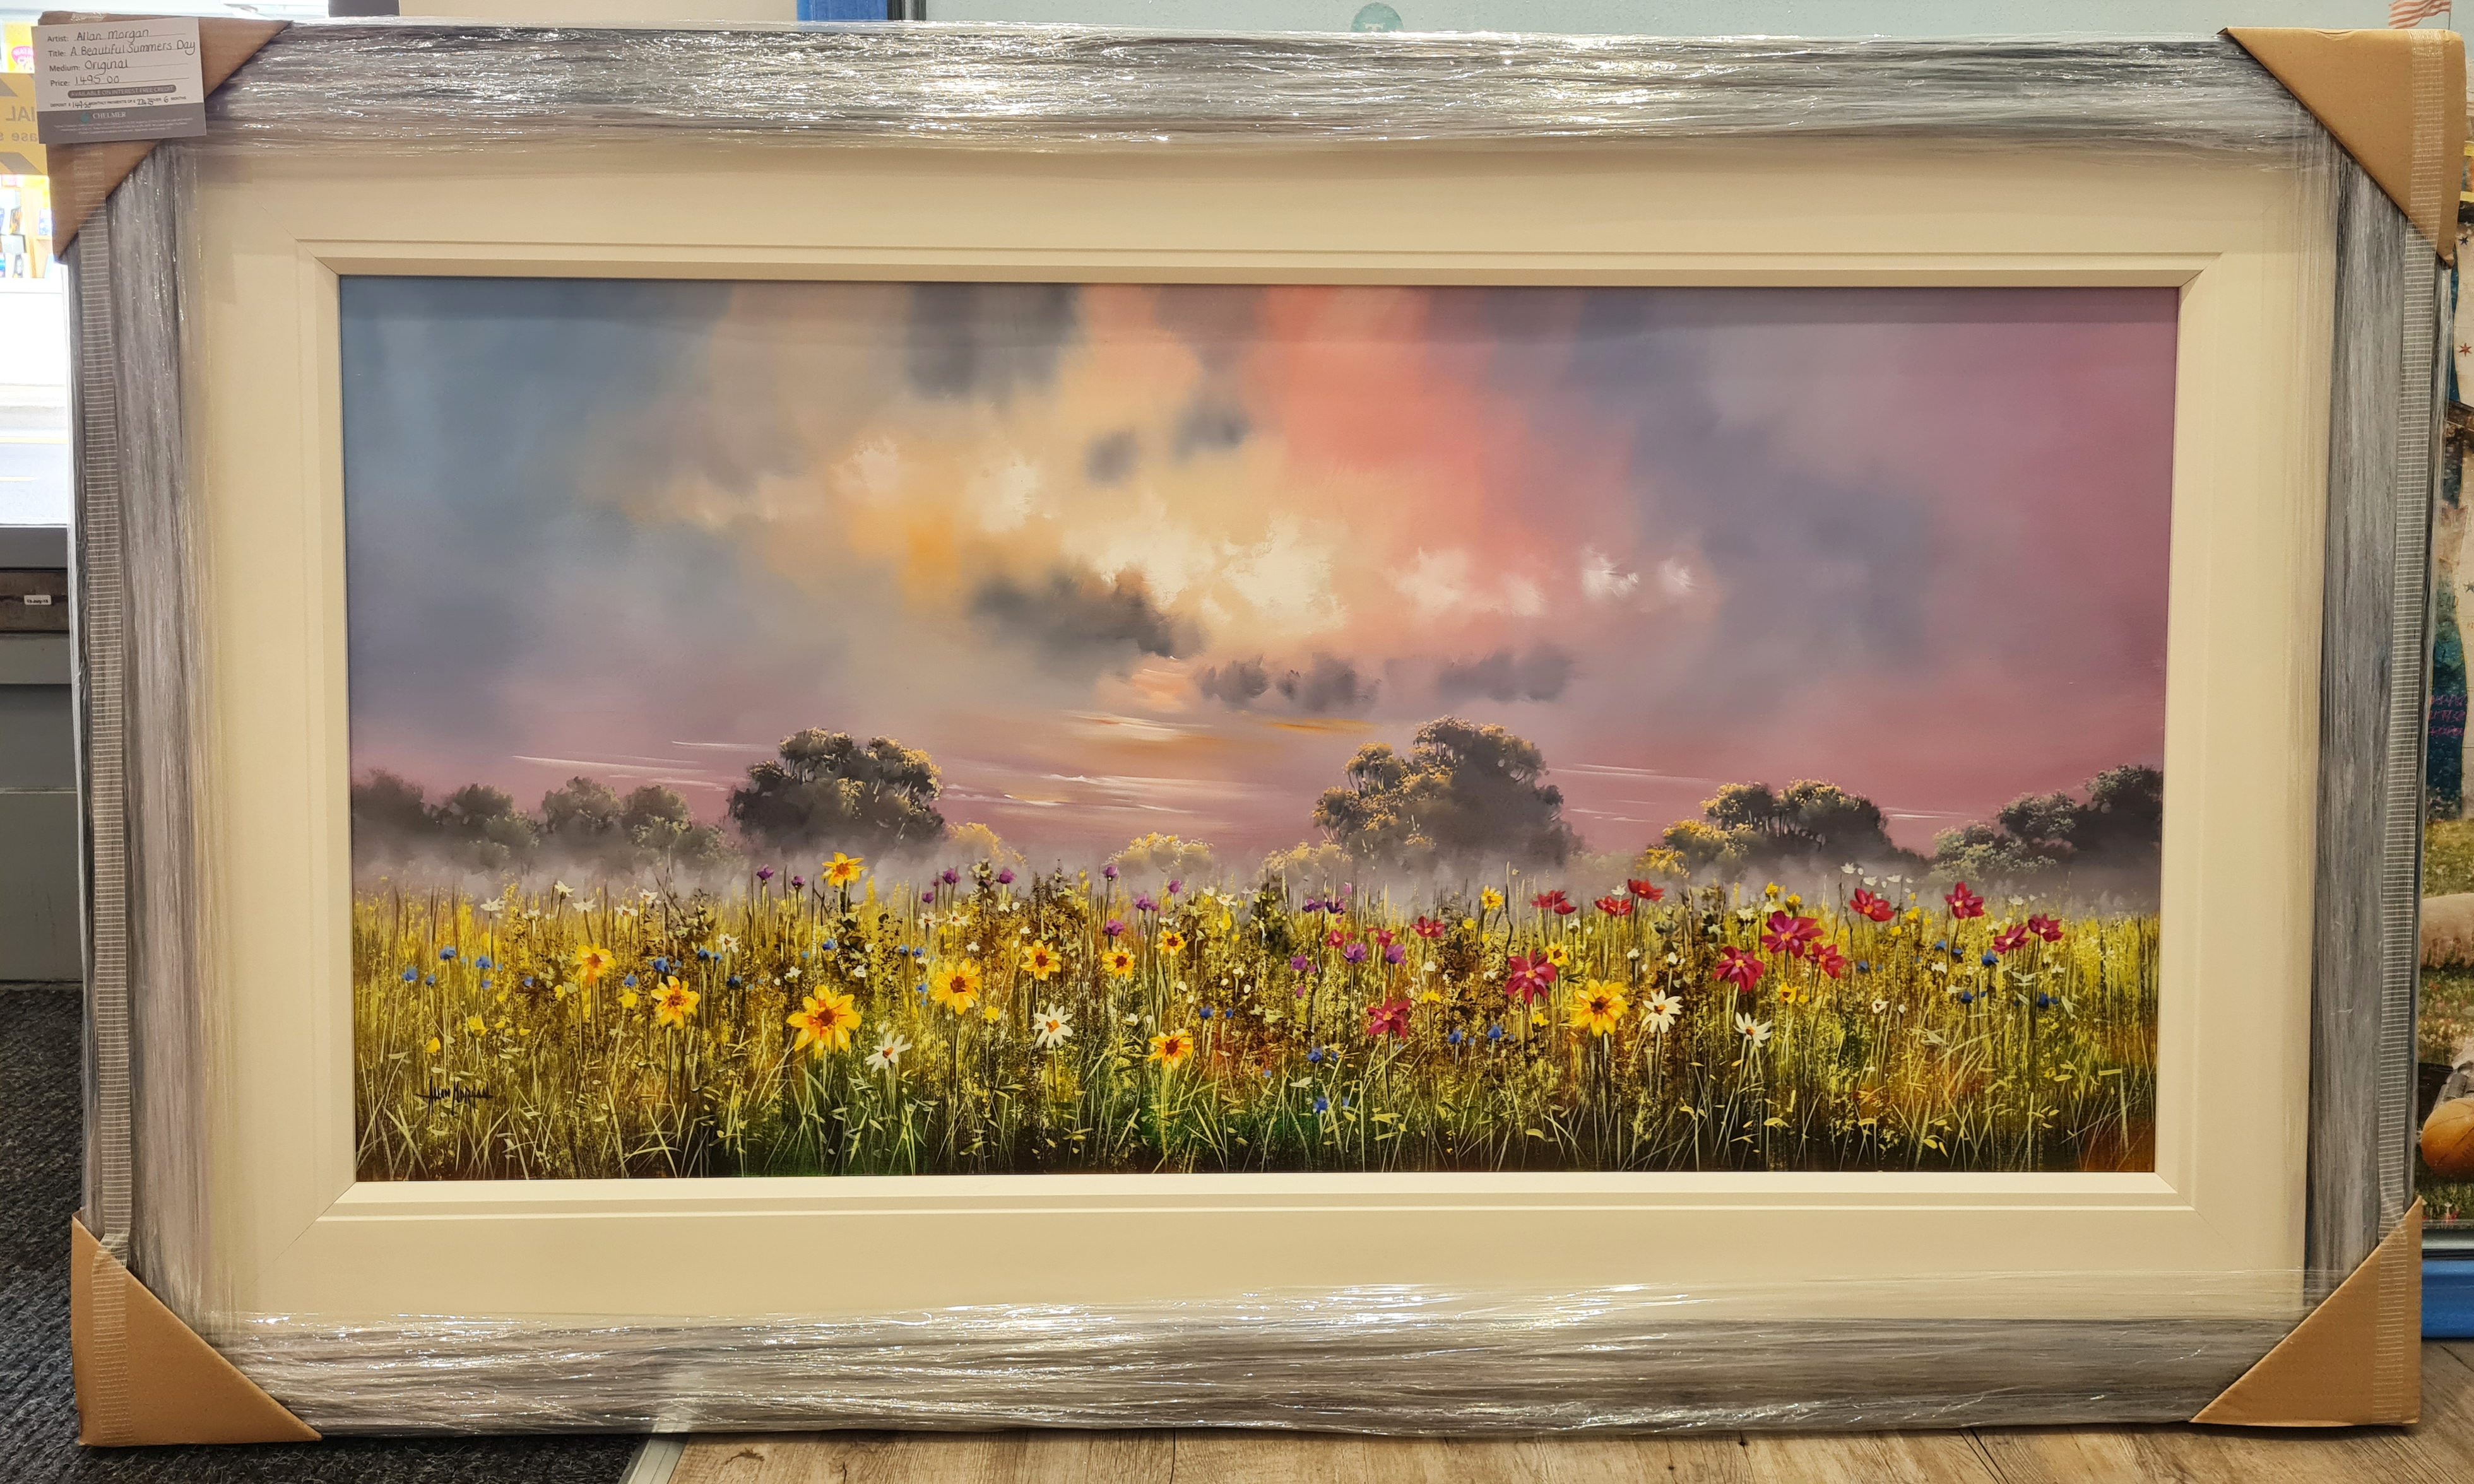 A Beautiful Summers Day by Allan Morgan